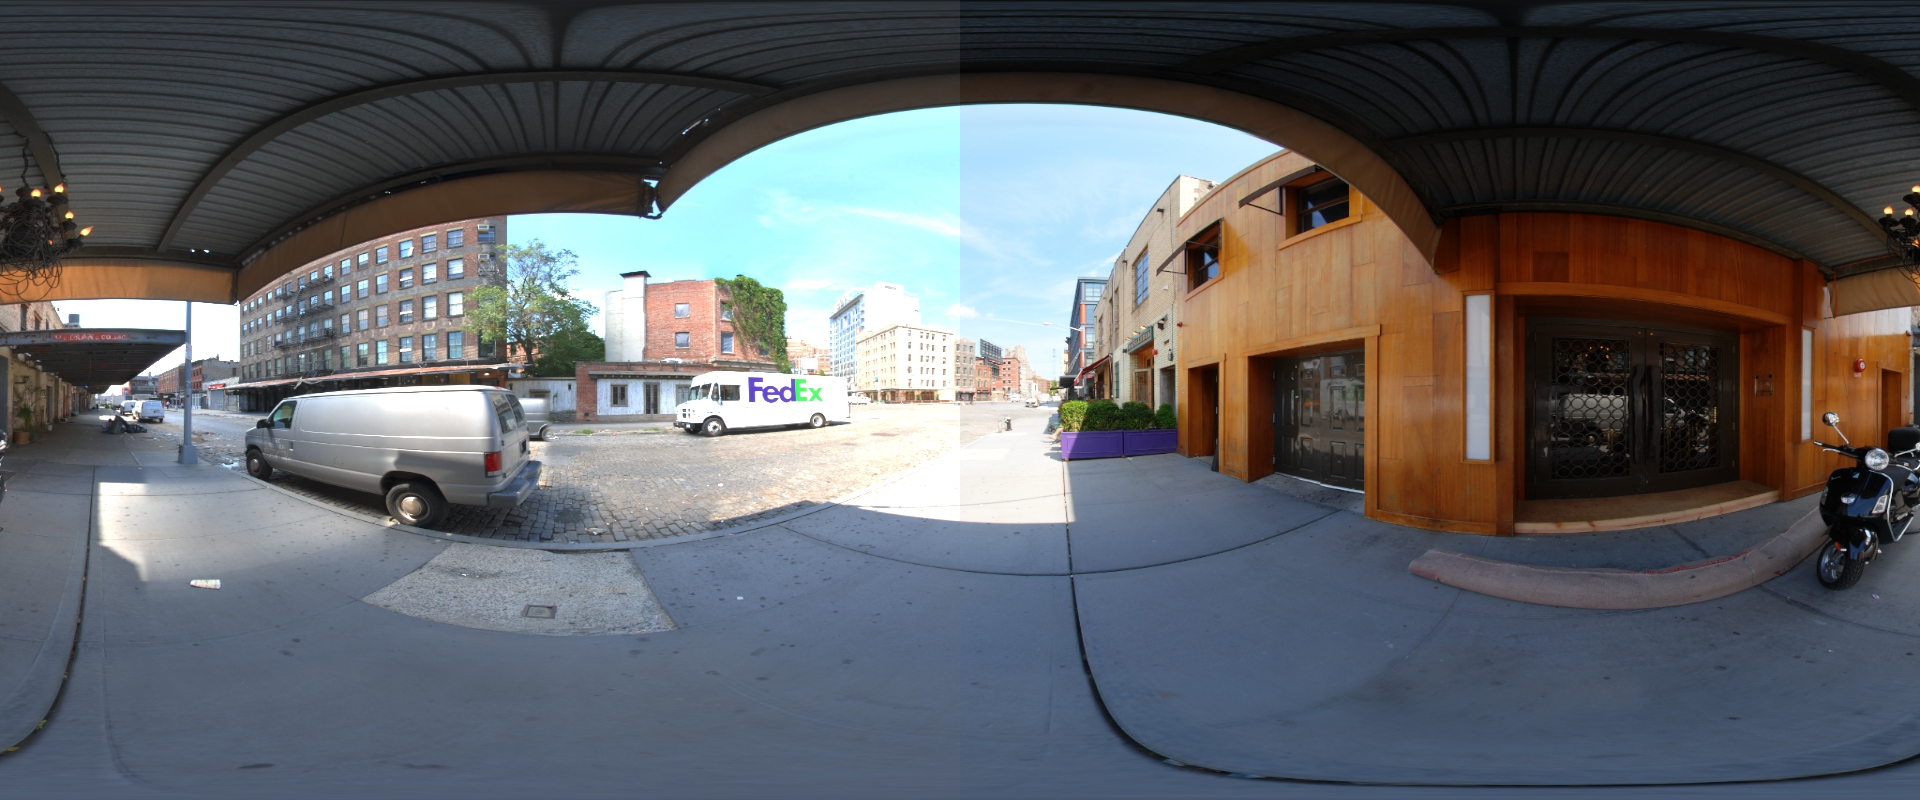 Filmic Tonemapping with Piecewise Power Curves